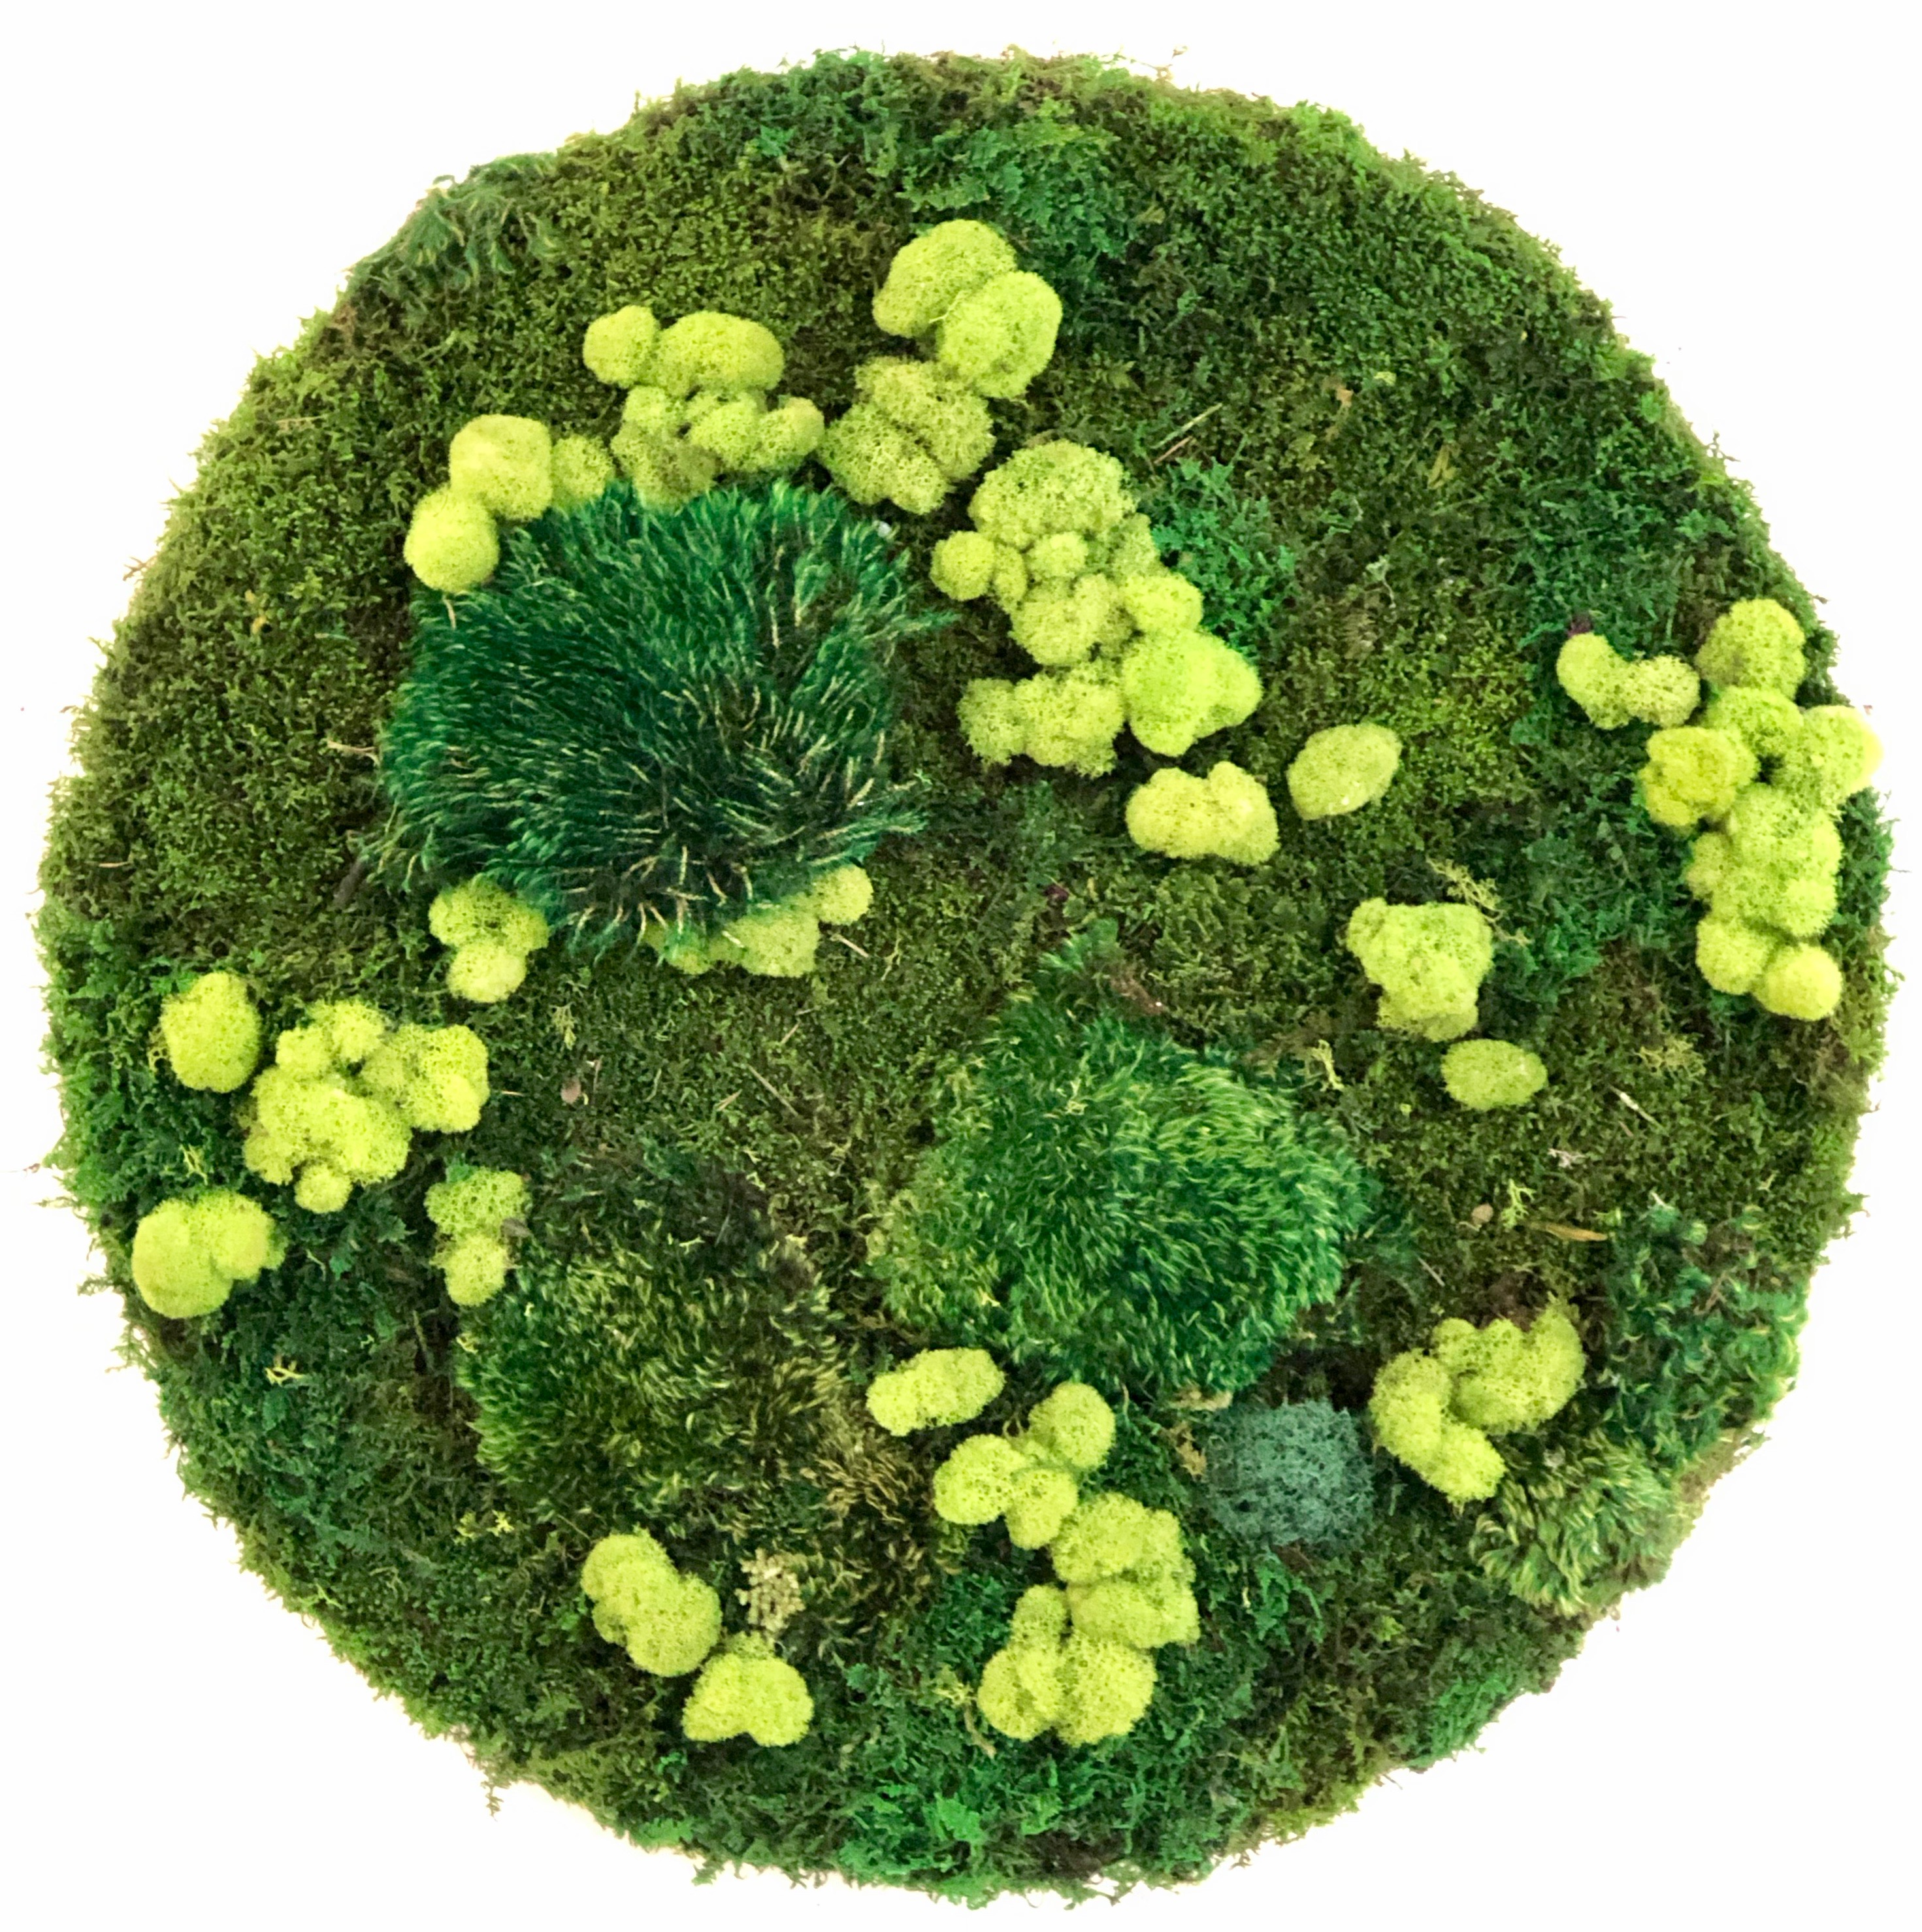 Circle_with_deerfoot_moss.jpeg